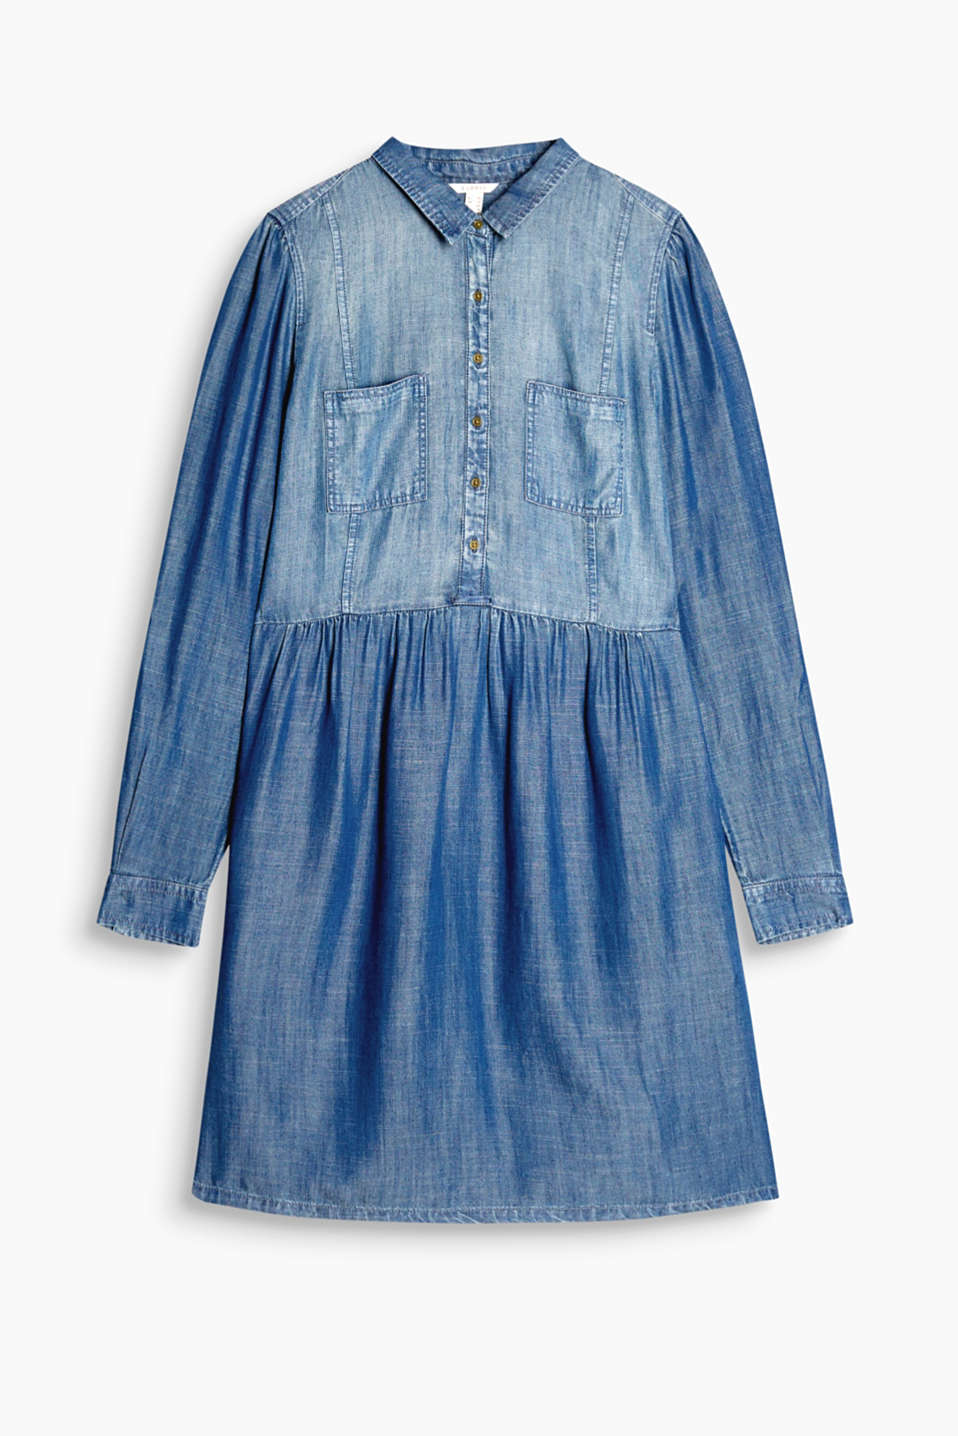 A brilliant piece for wearing all year: shirt dress in a flowing denim look with adjustable turn-up sleeves